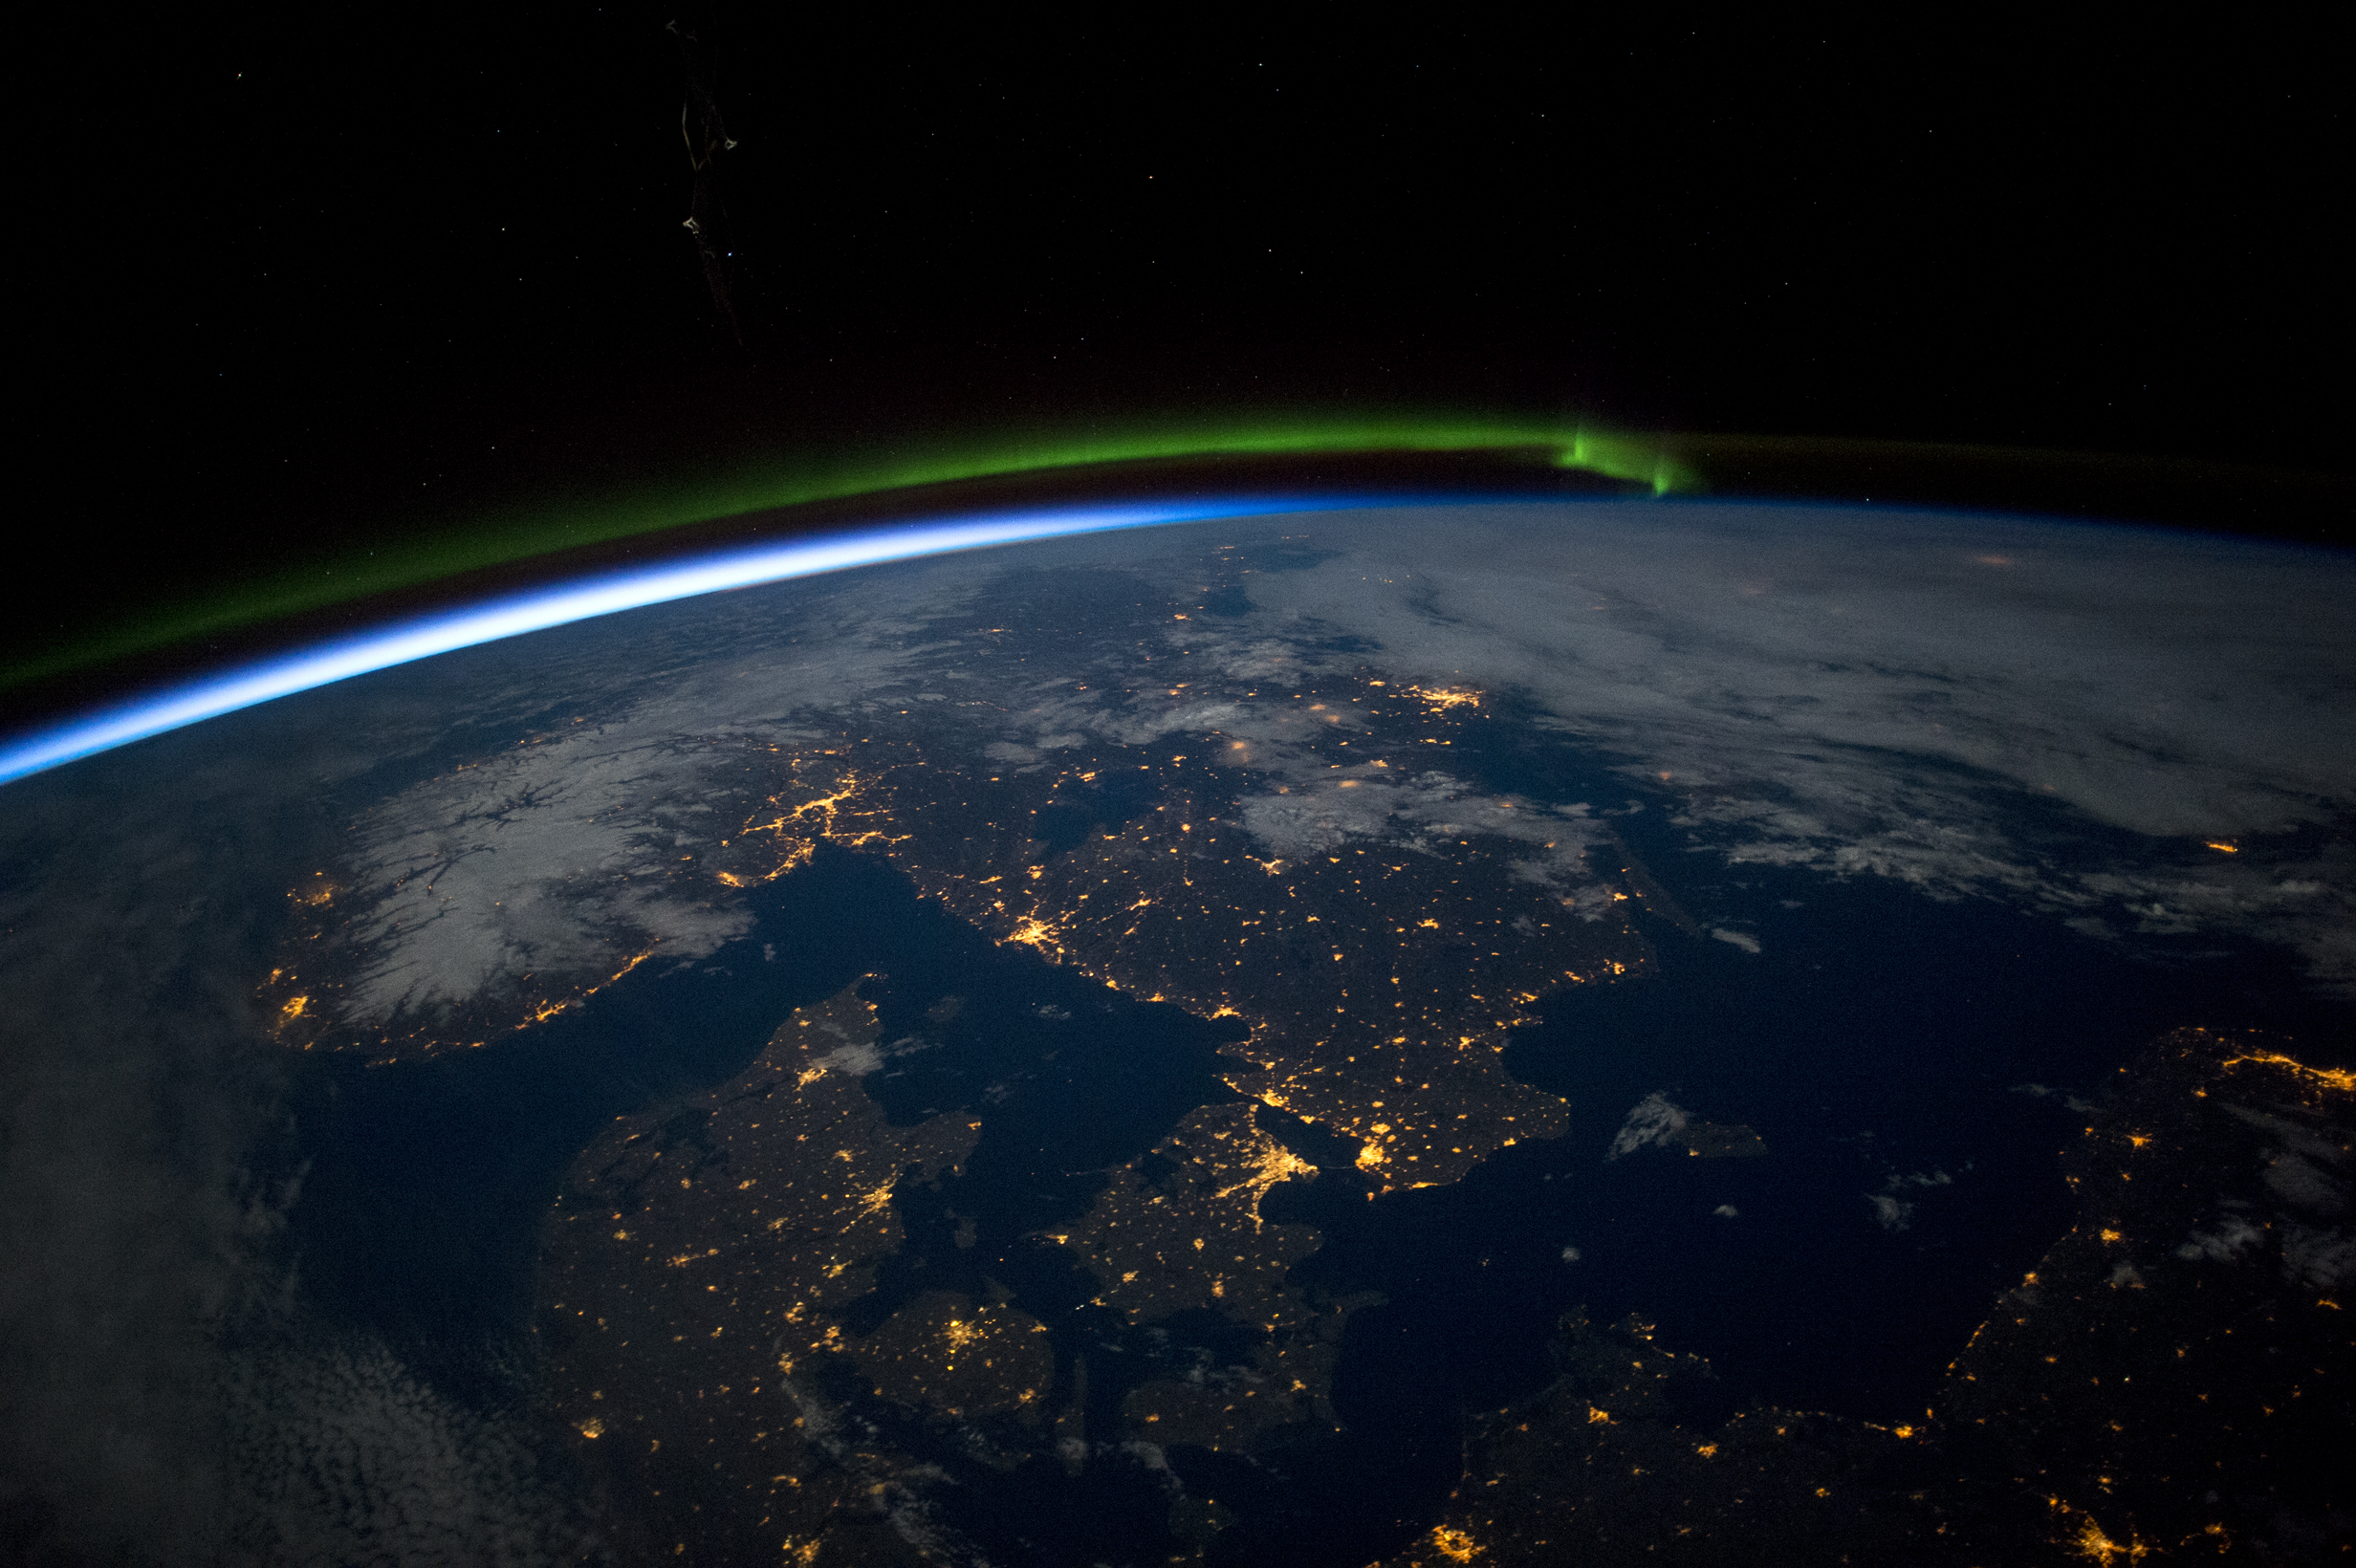 Scandinavian night, image courtesy of NASA